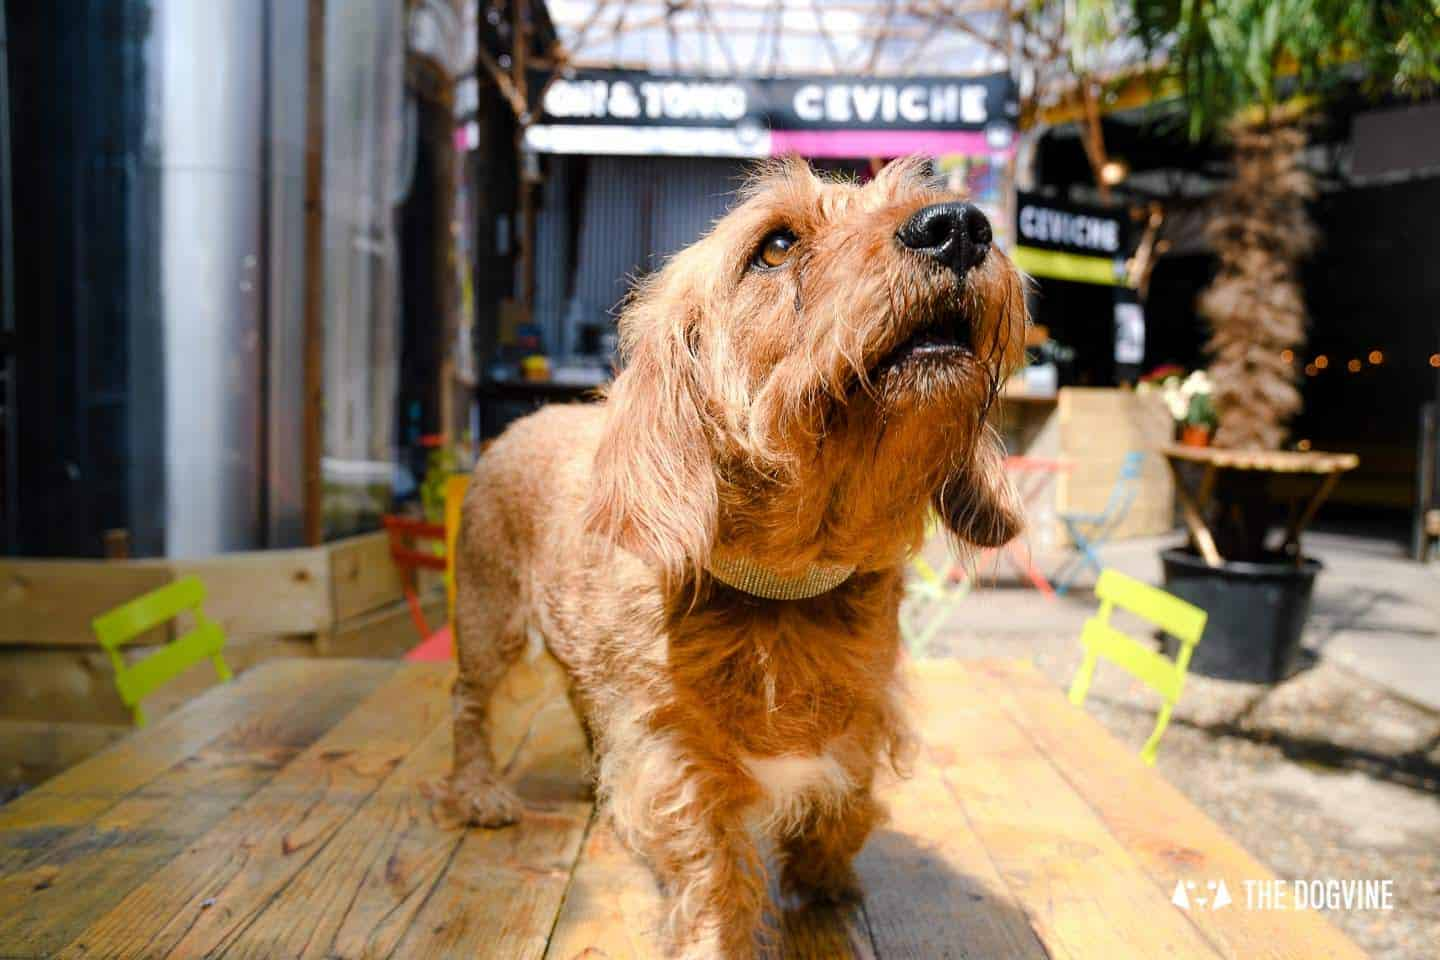 My Dog Friendly London By Amber - Dog Friendly Elephant & Castle - Mercato Metropolitano 1